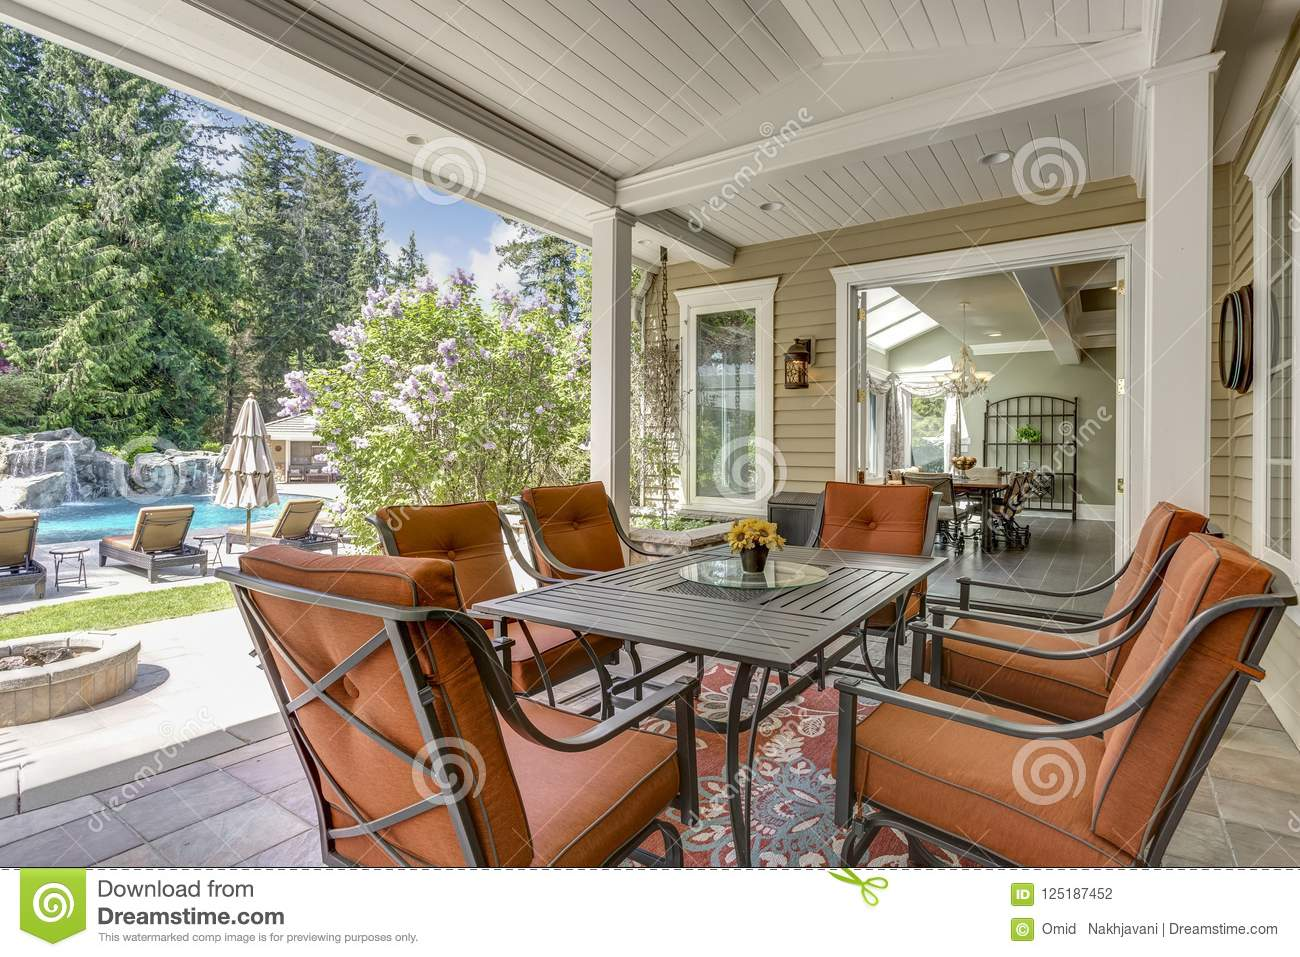 Spacious Covered Deck Patio With Table And Red Chairs Stock Photo Image Of Exterior Cozy 125187452